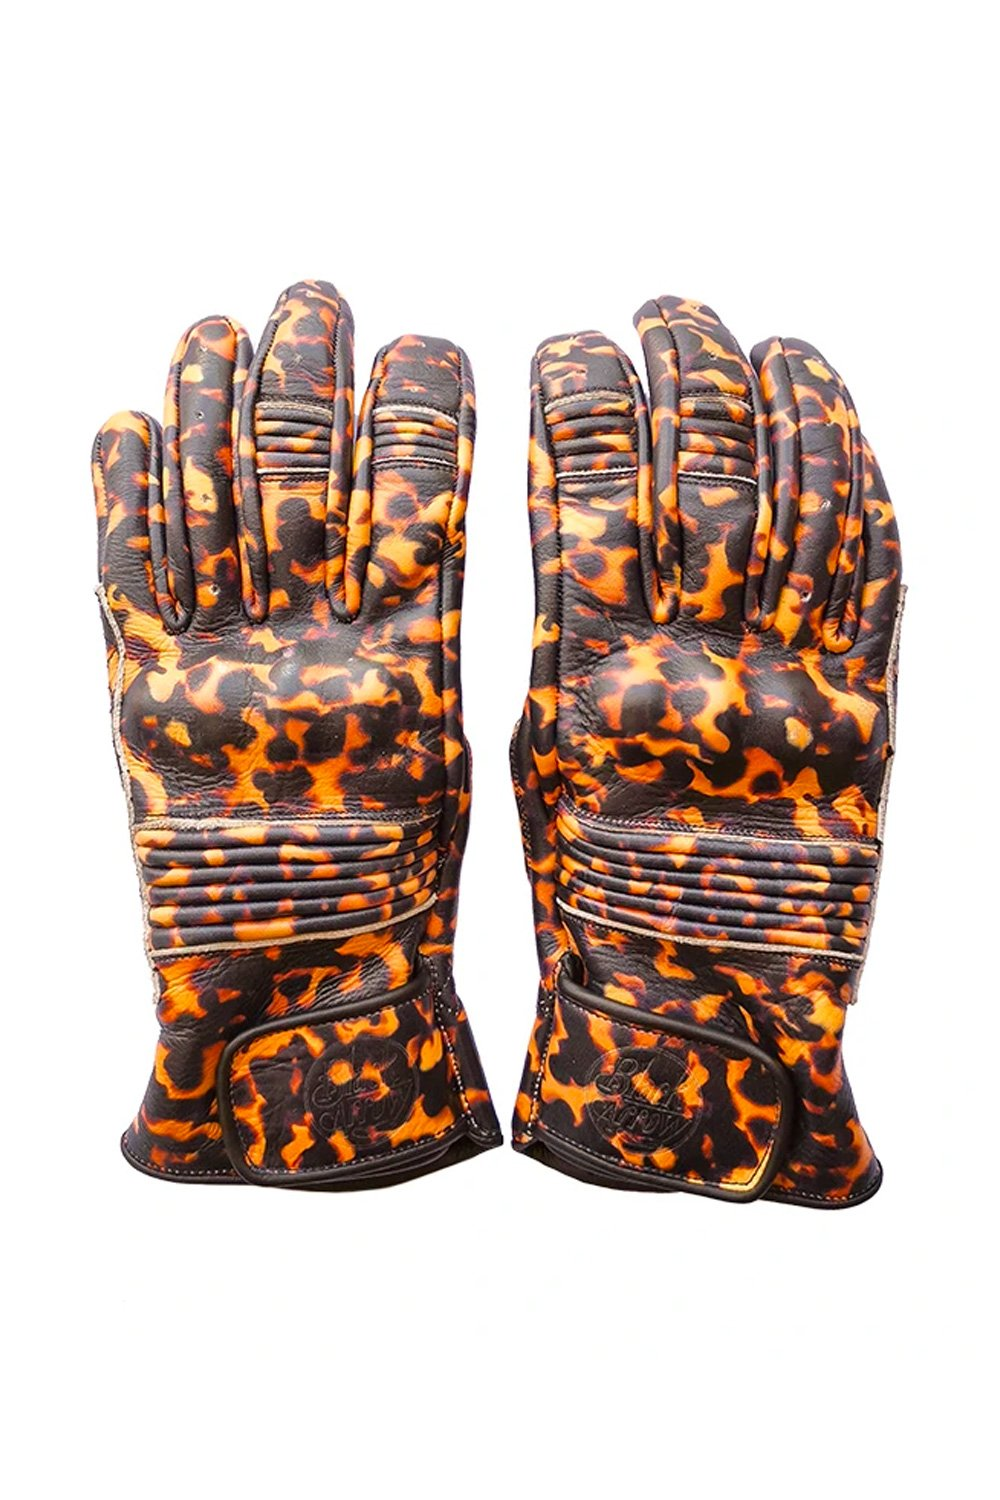 QUEEN BEE MOTORCYCLE GLOVES - TORTOISESHELL